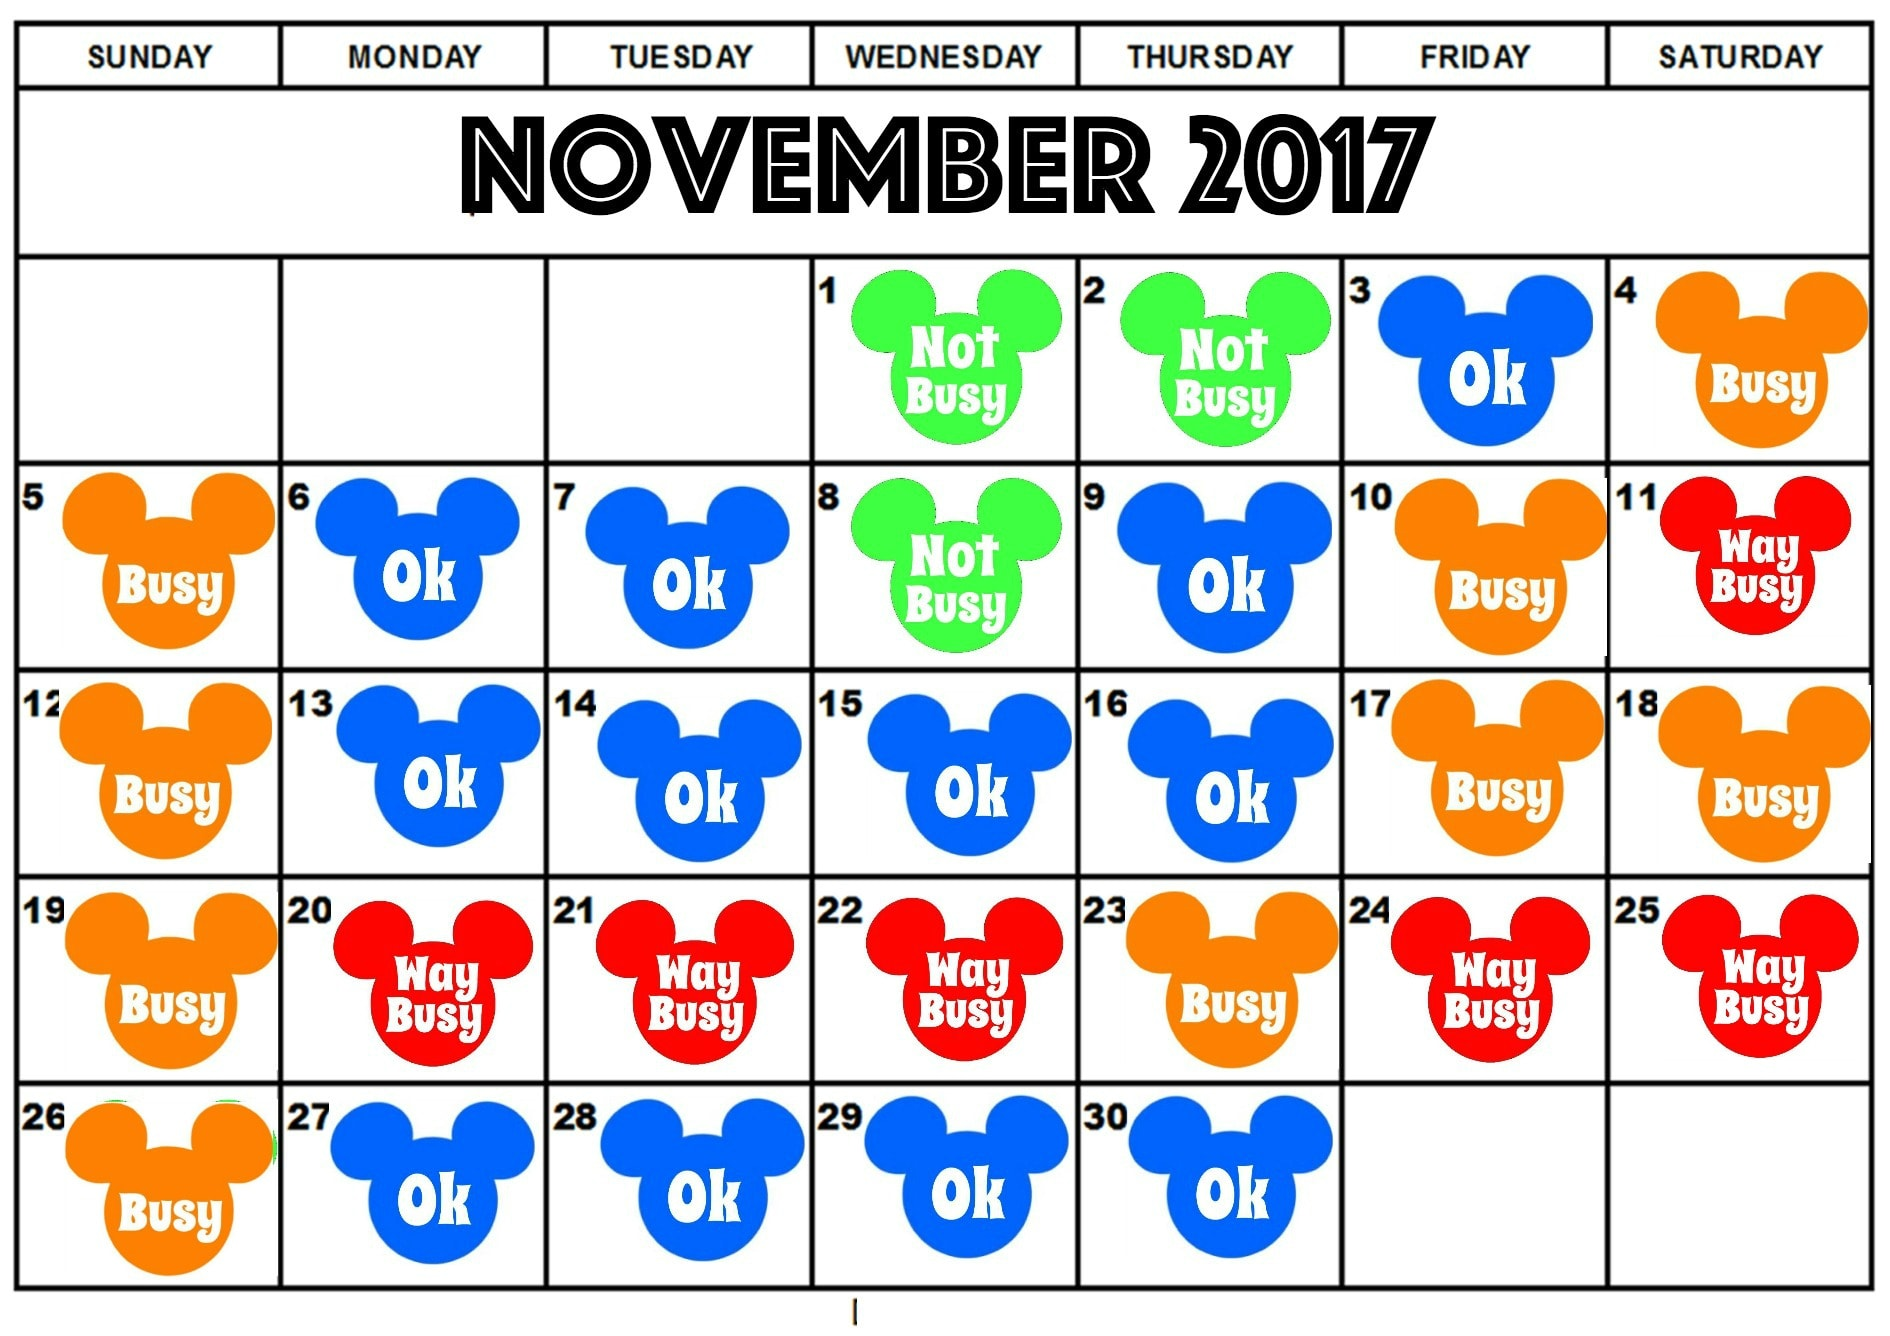 Best Days to Visit Disneyland 2017